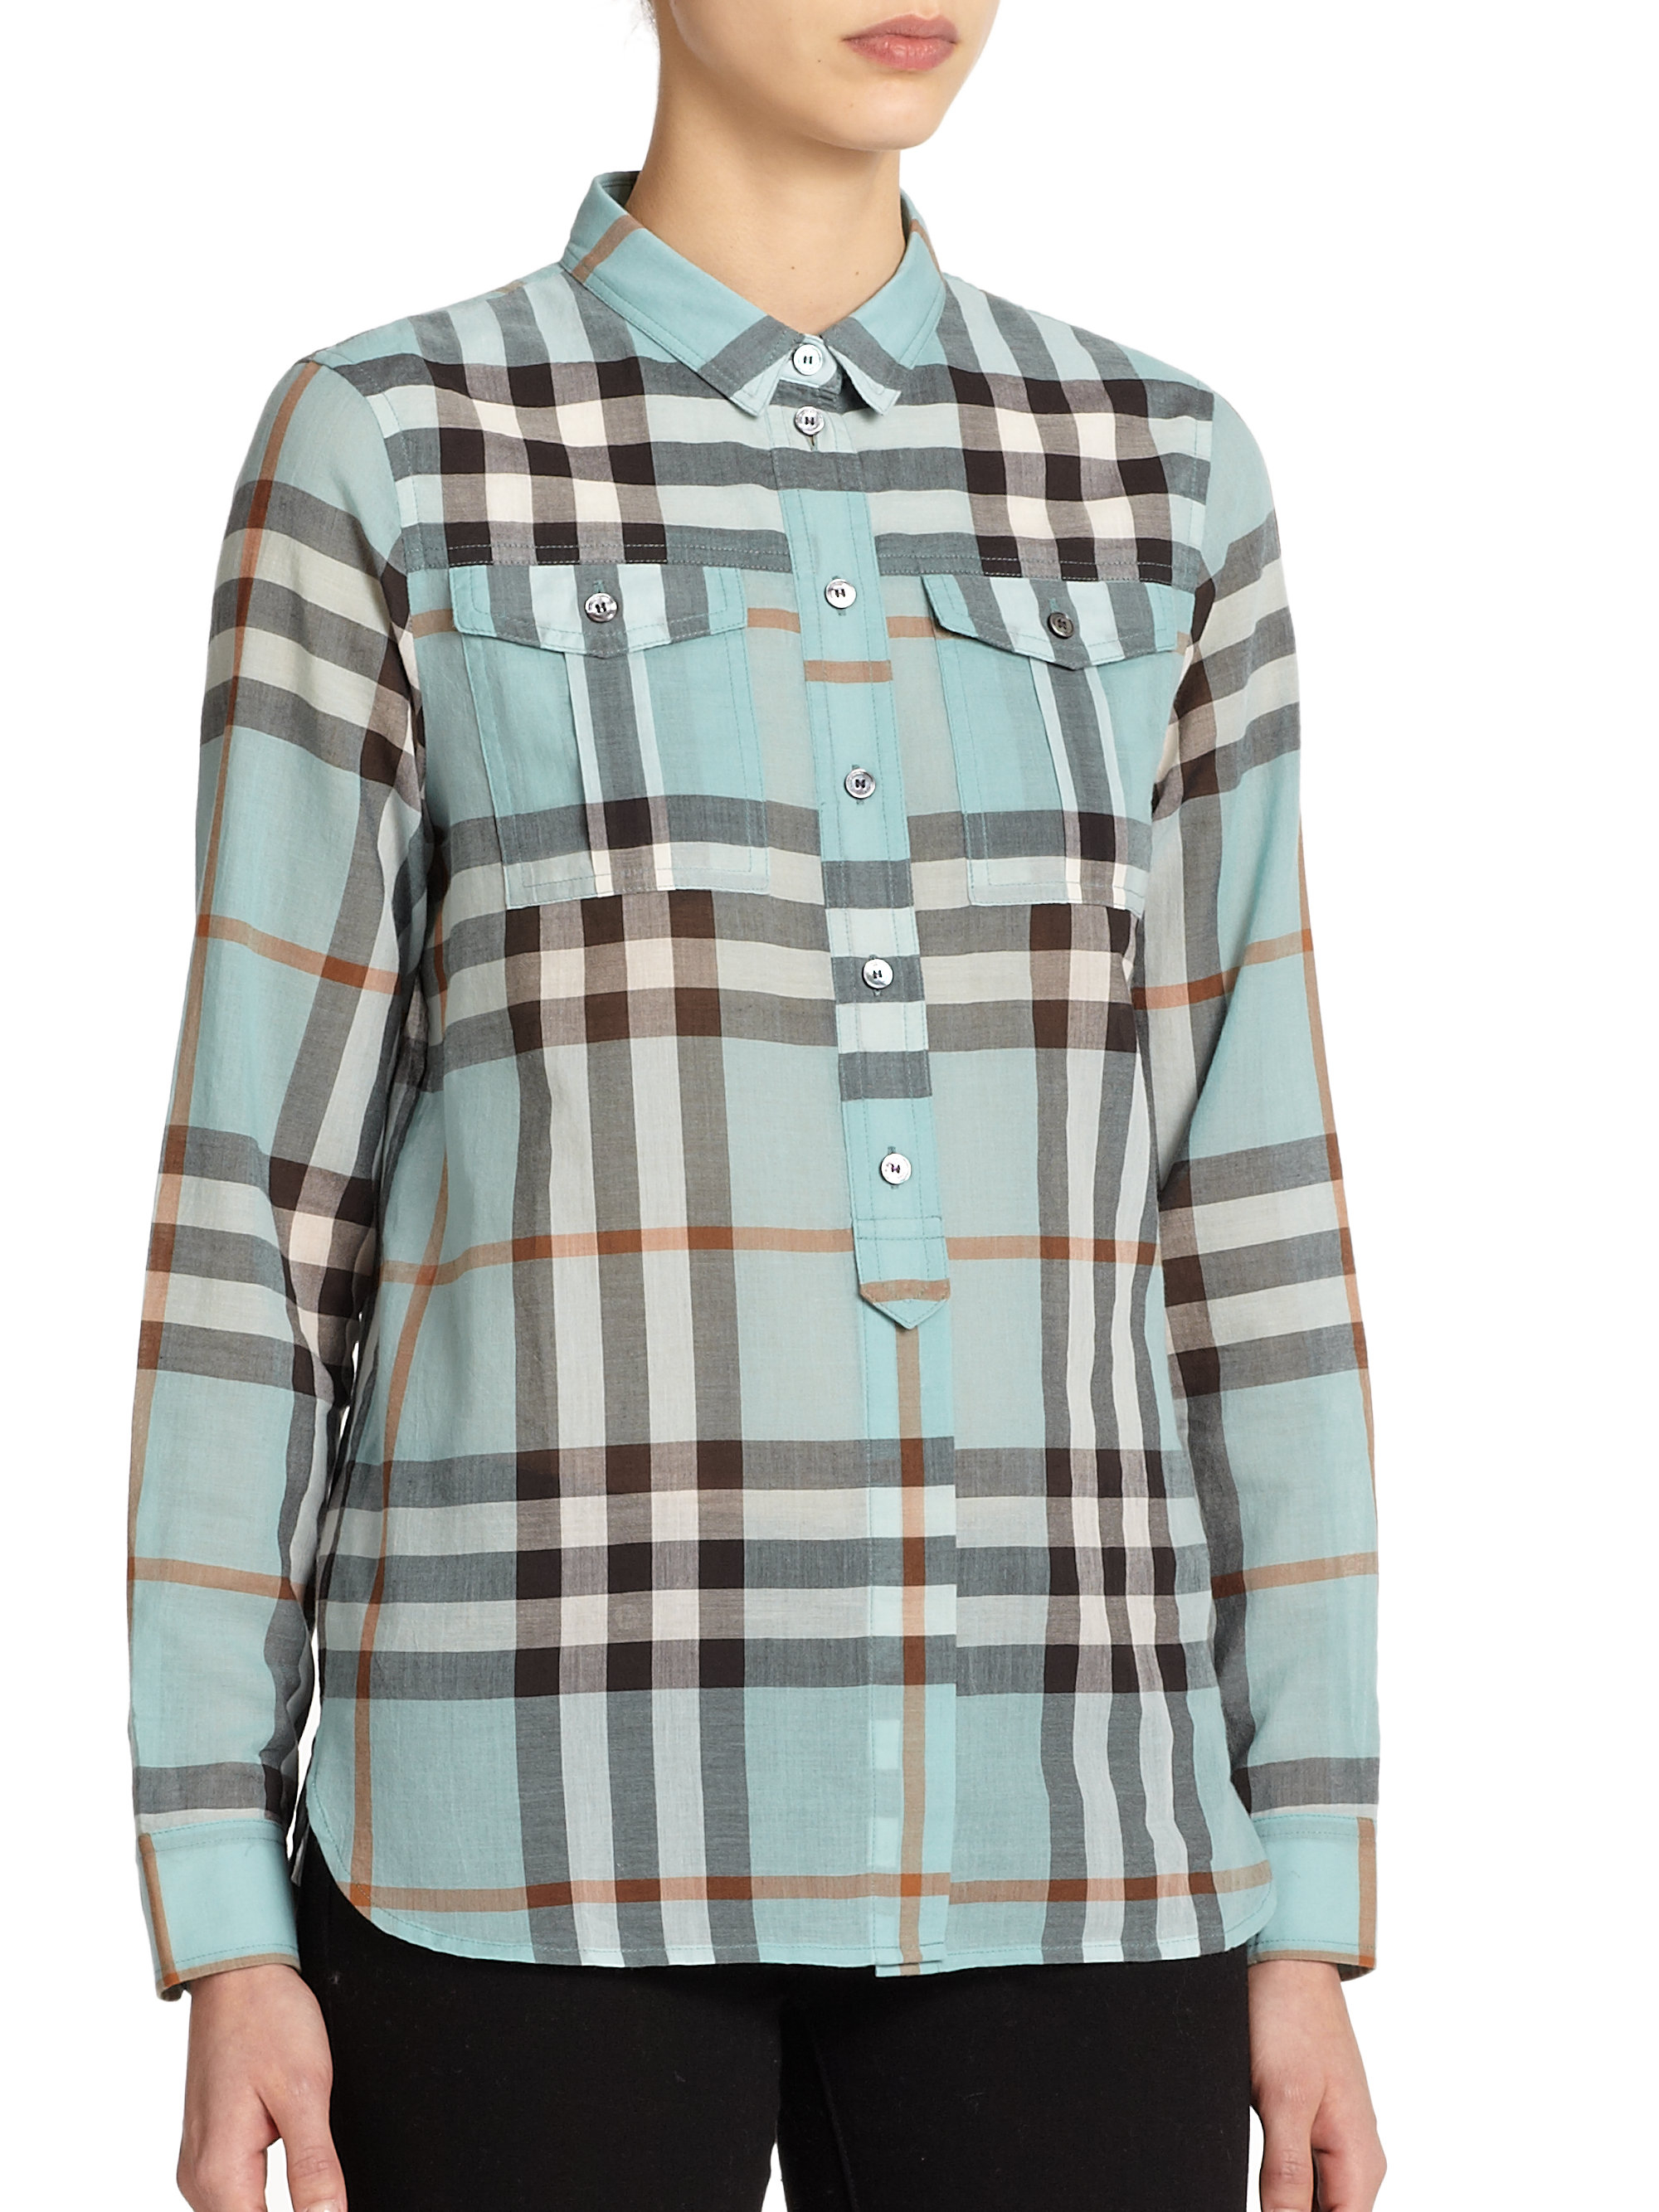 Burberry brit check patterned shirt in green lyst for Burberry brit green plaid shirt